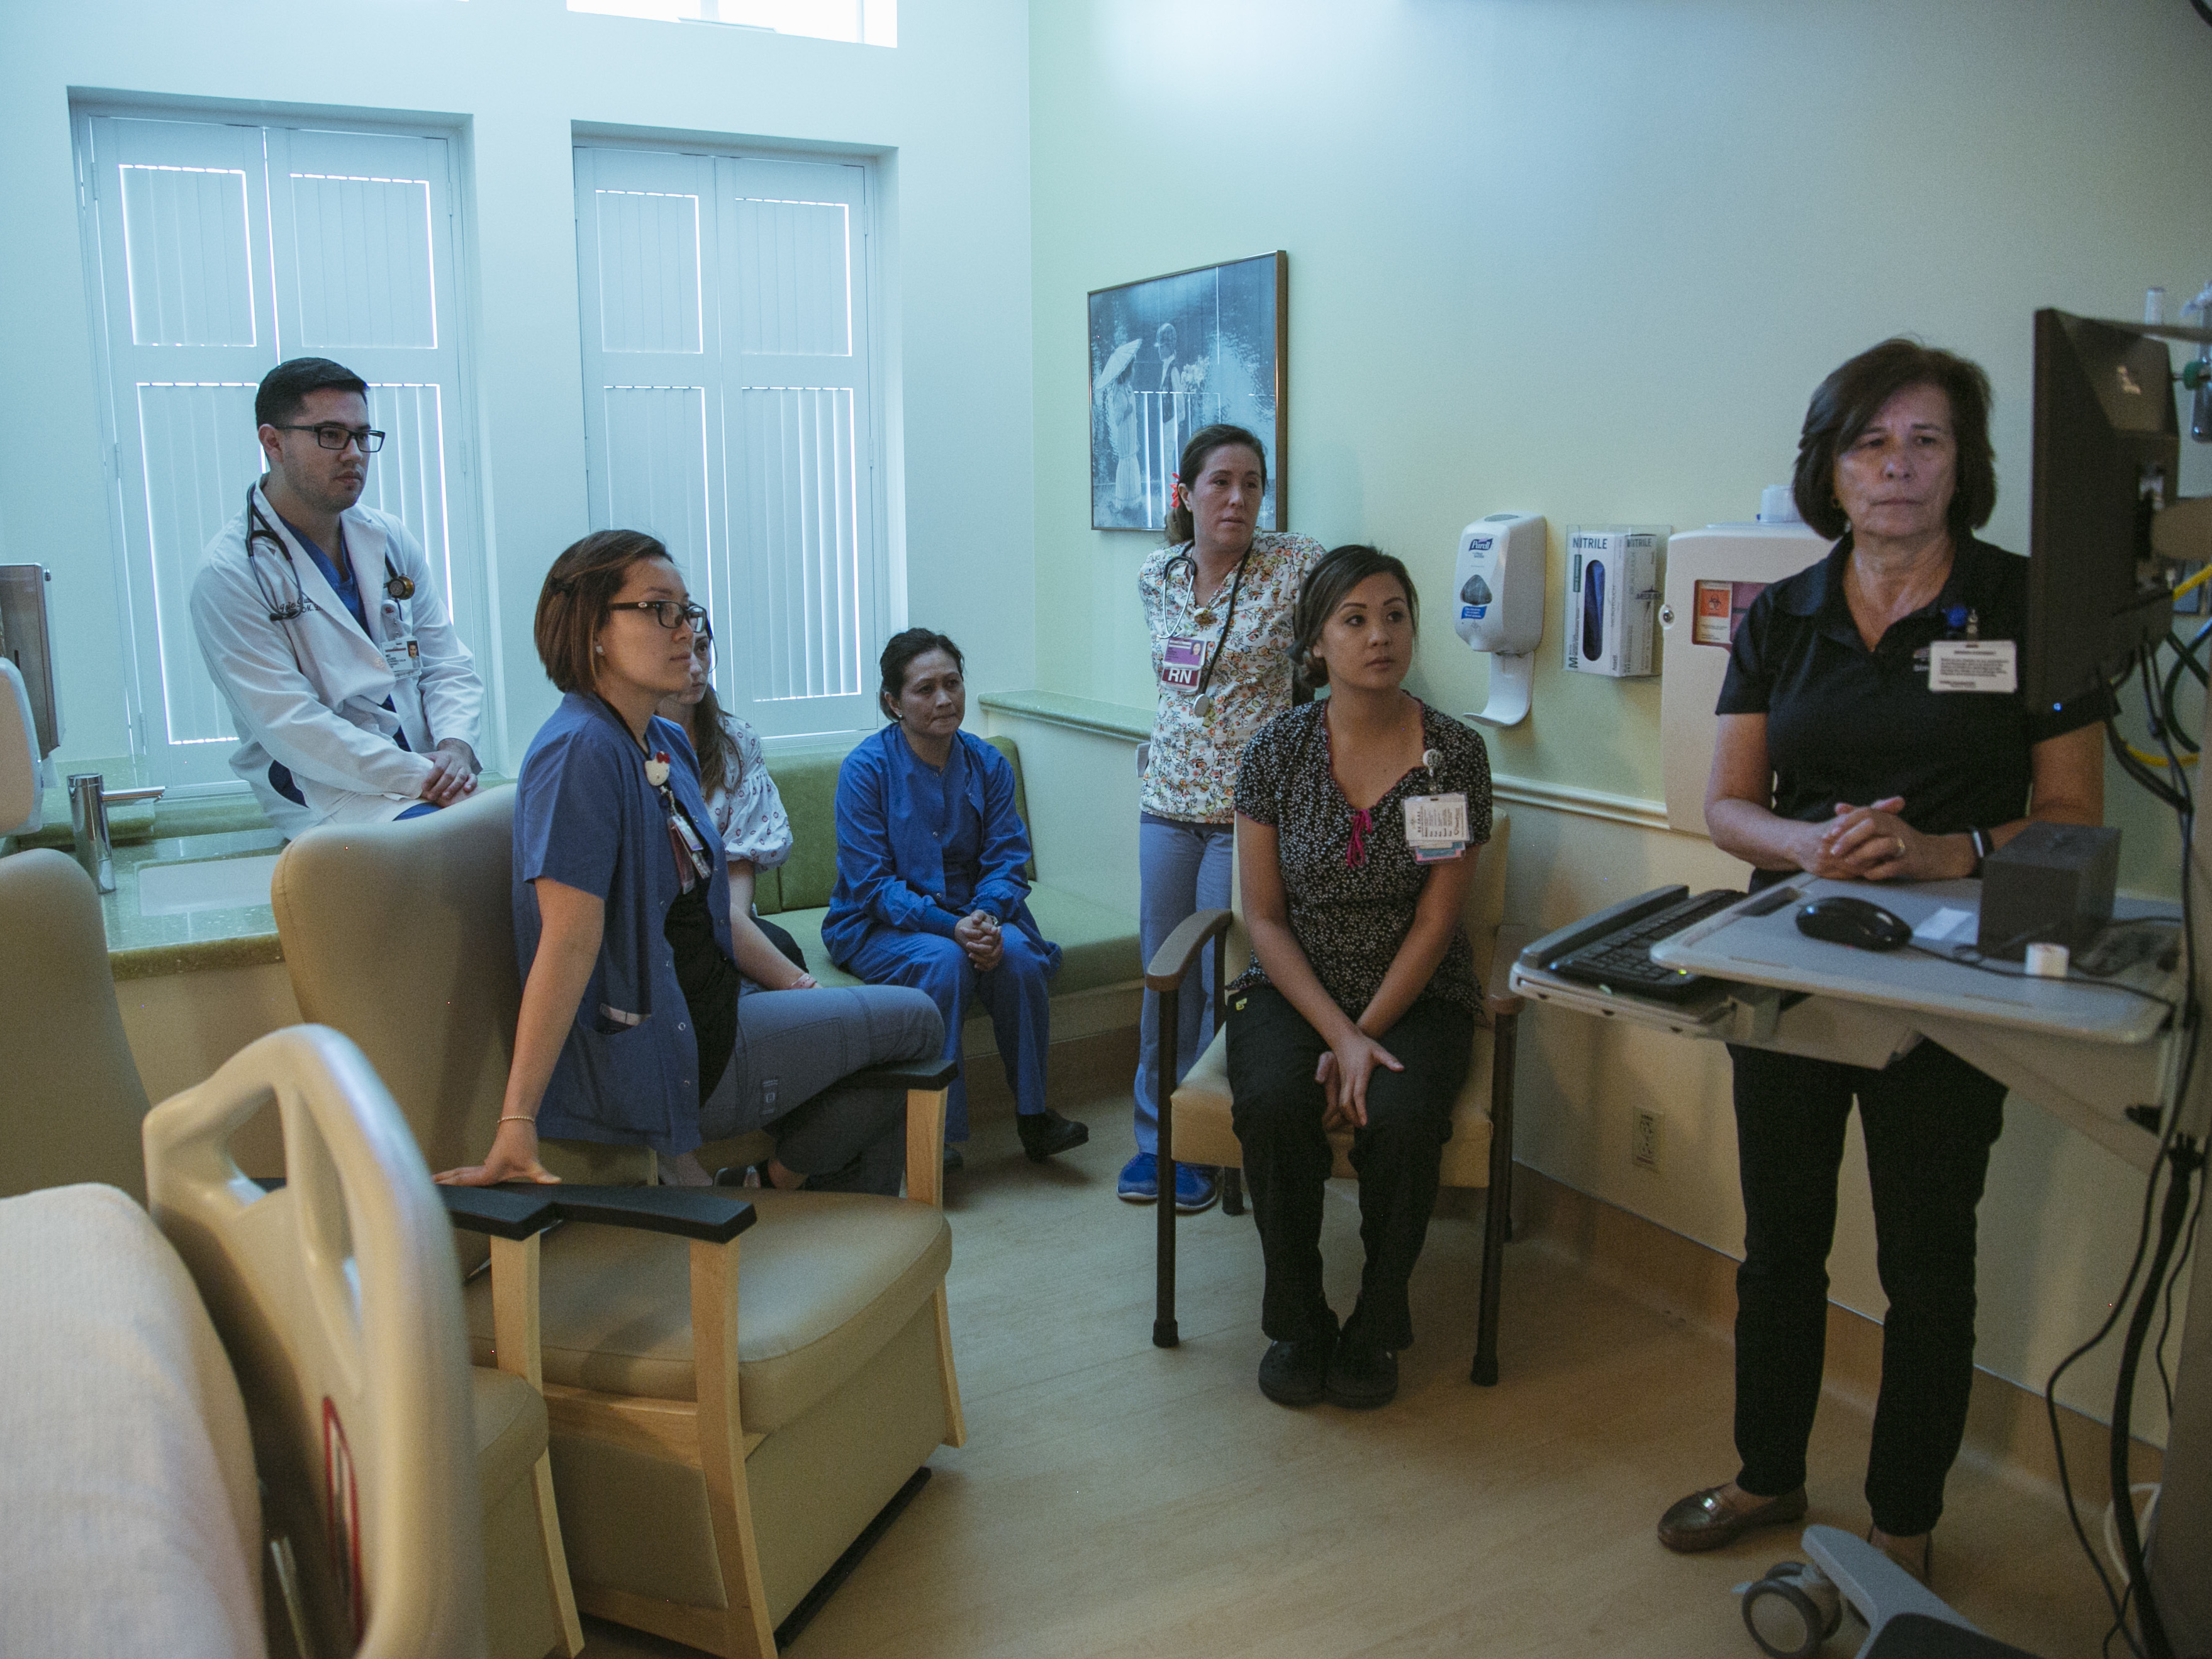 Hospital staff at Pomona Valley Hospital Medical Center review video footage of an emergency drill performed on a medical mannequin.